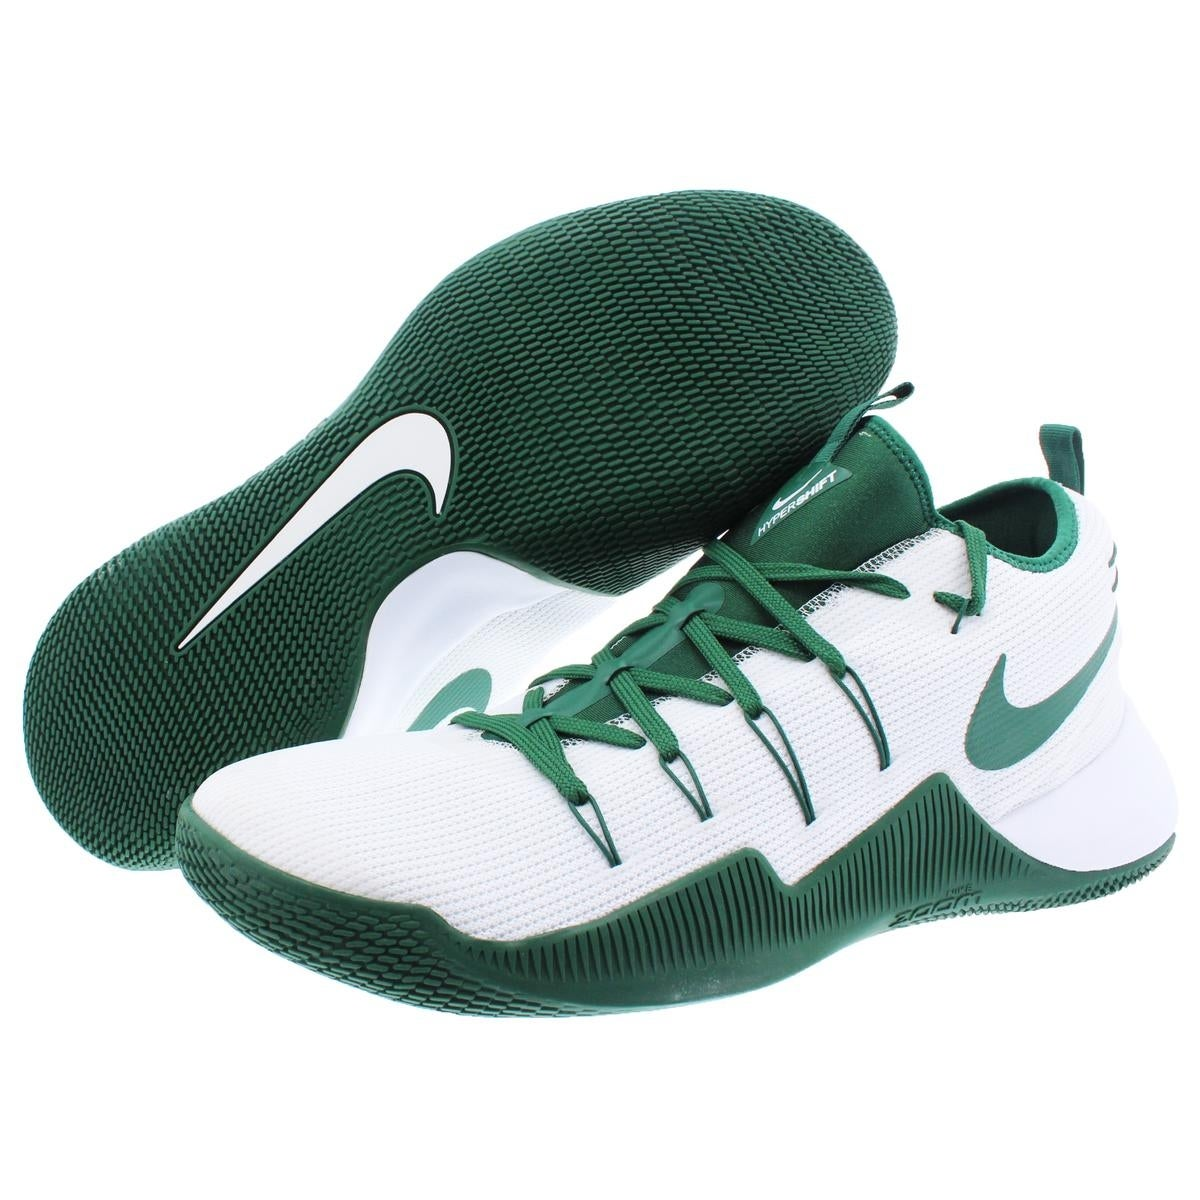 80a44ff84334 Shop Nike Mens Hypershift TB PROMO Basketball Shoes Mid Top Nike Zoom -  Free Shipping On Orders Over  45 - Overstock - 21942603